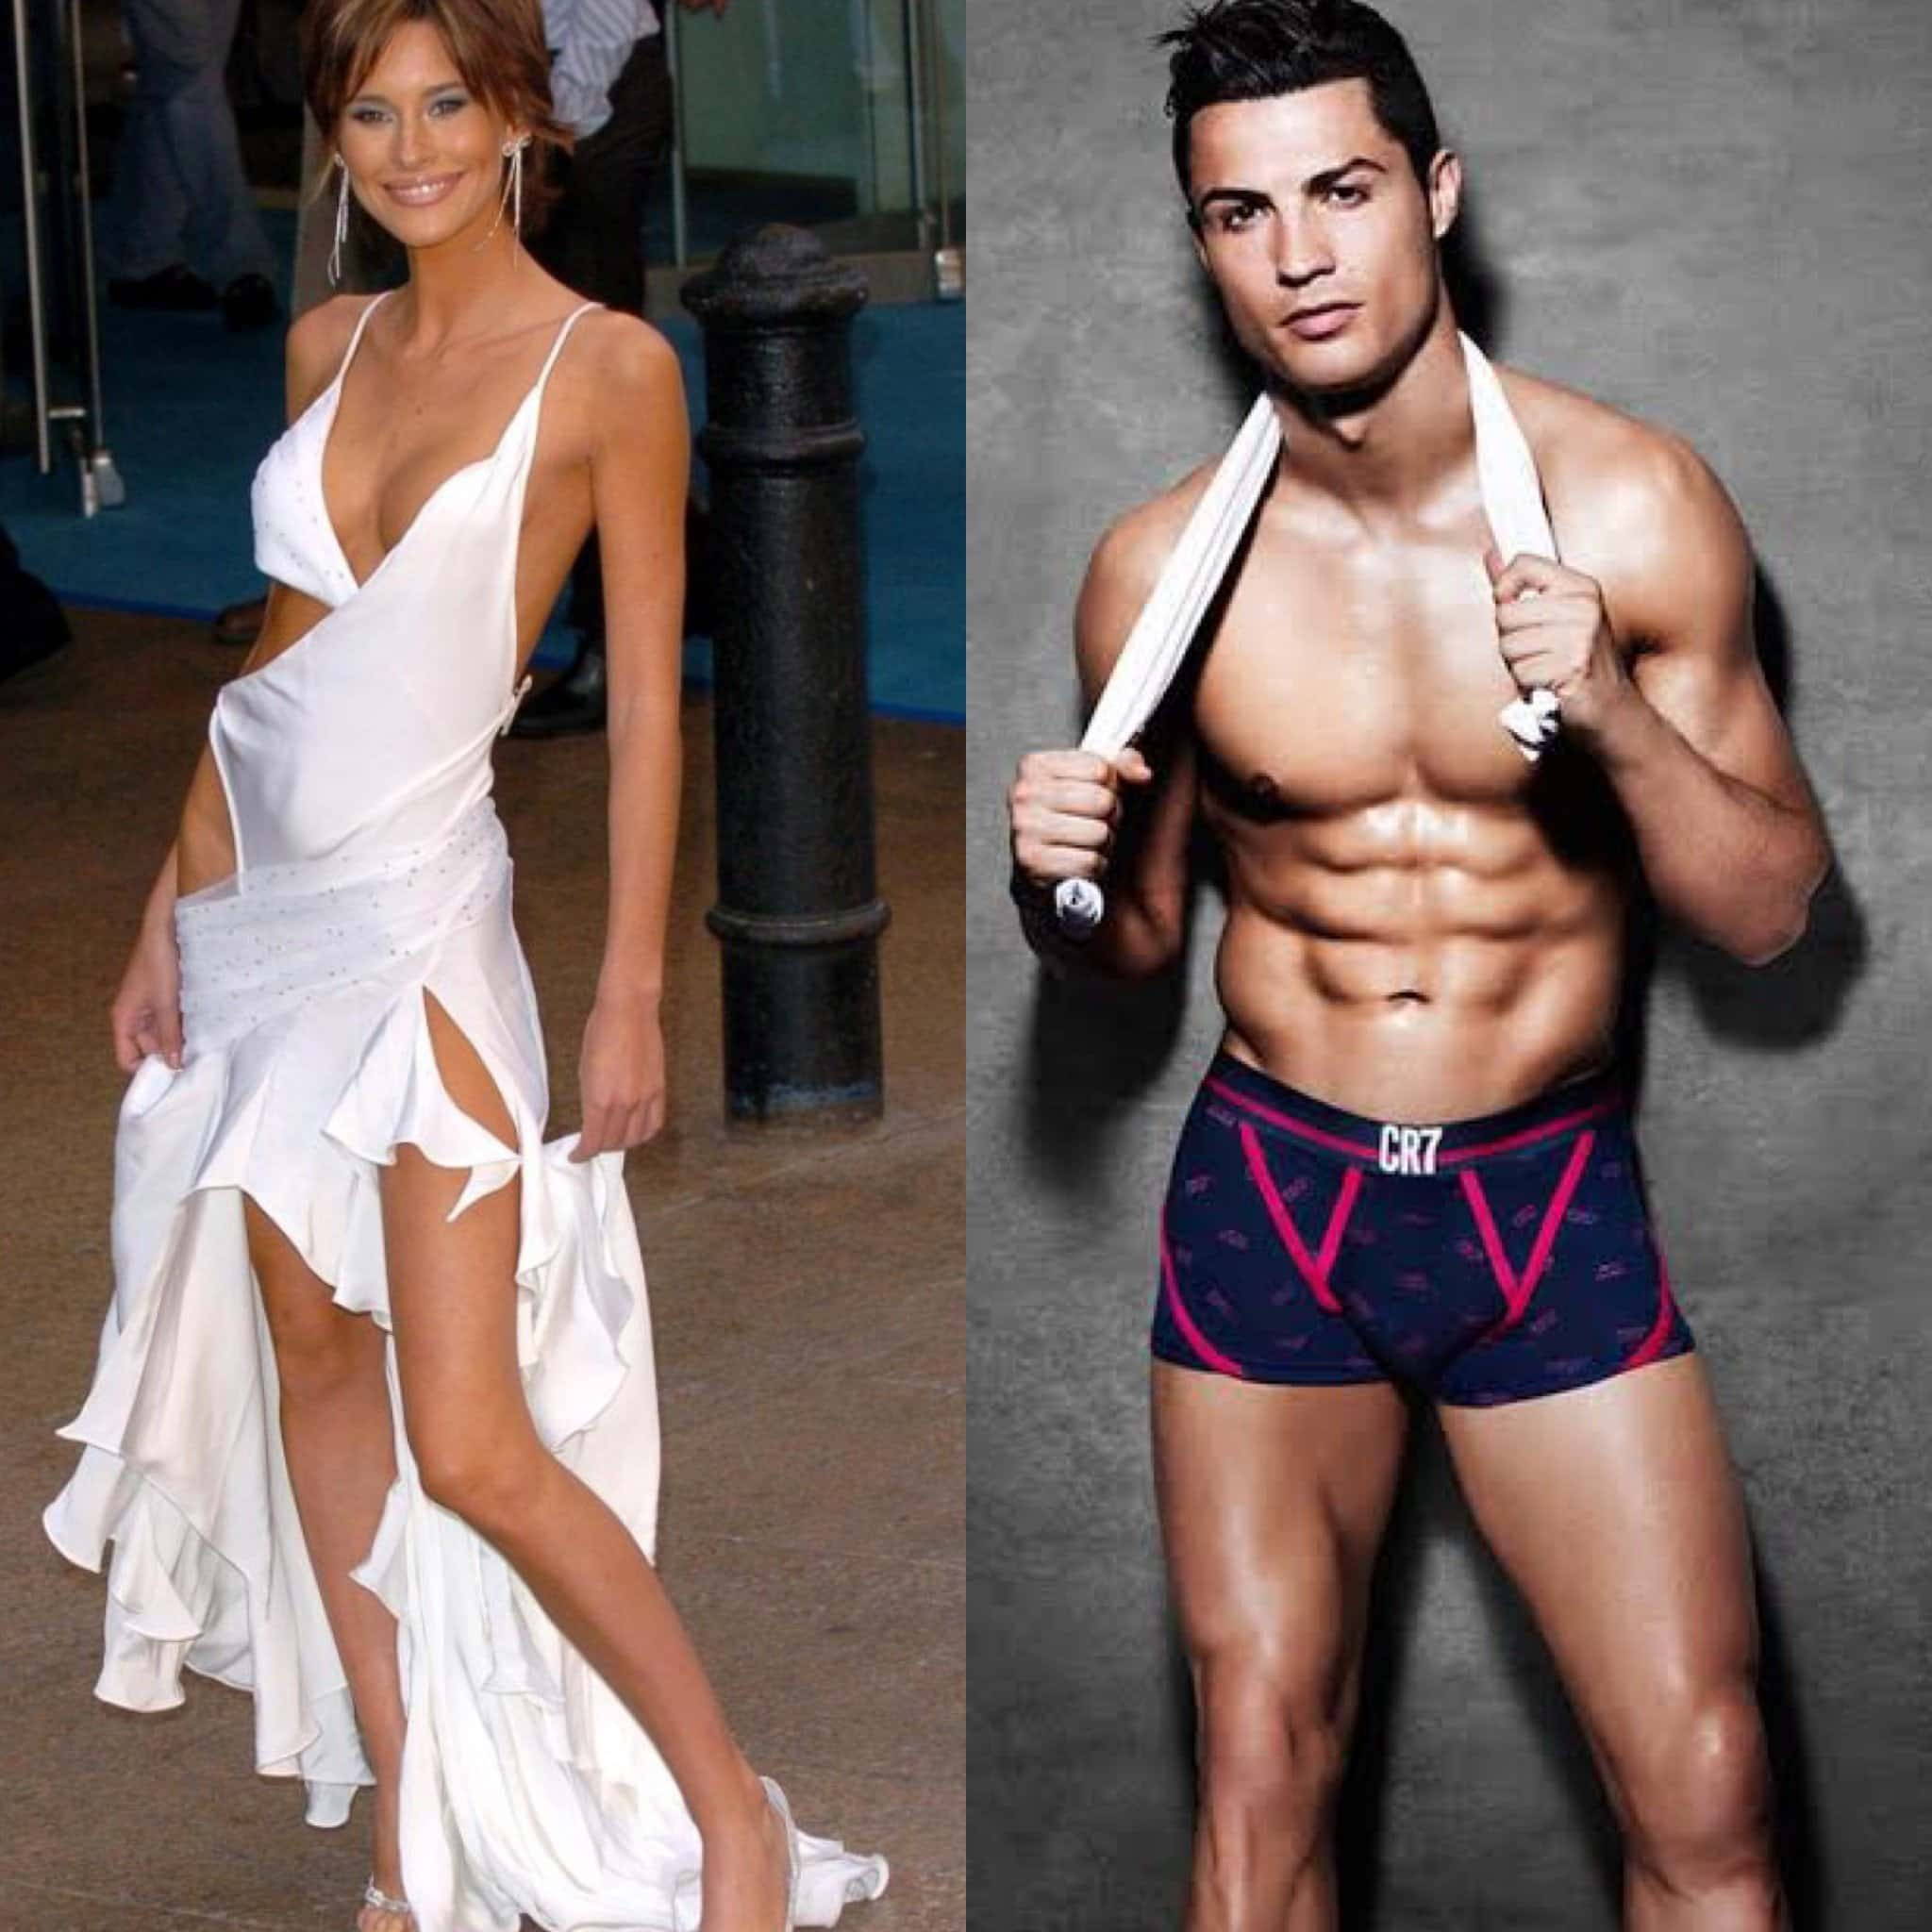 Photo of Lady who dated Ronaldo 10 years ago reveals shocking accusations against him